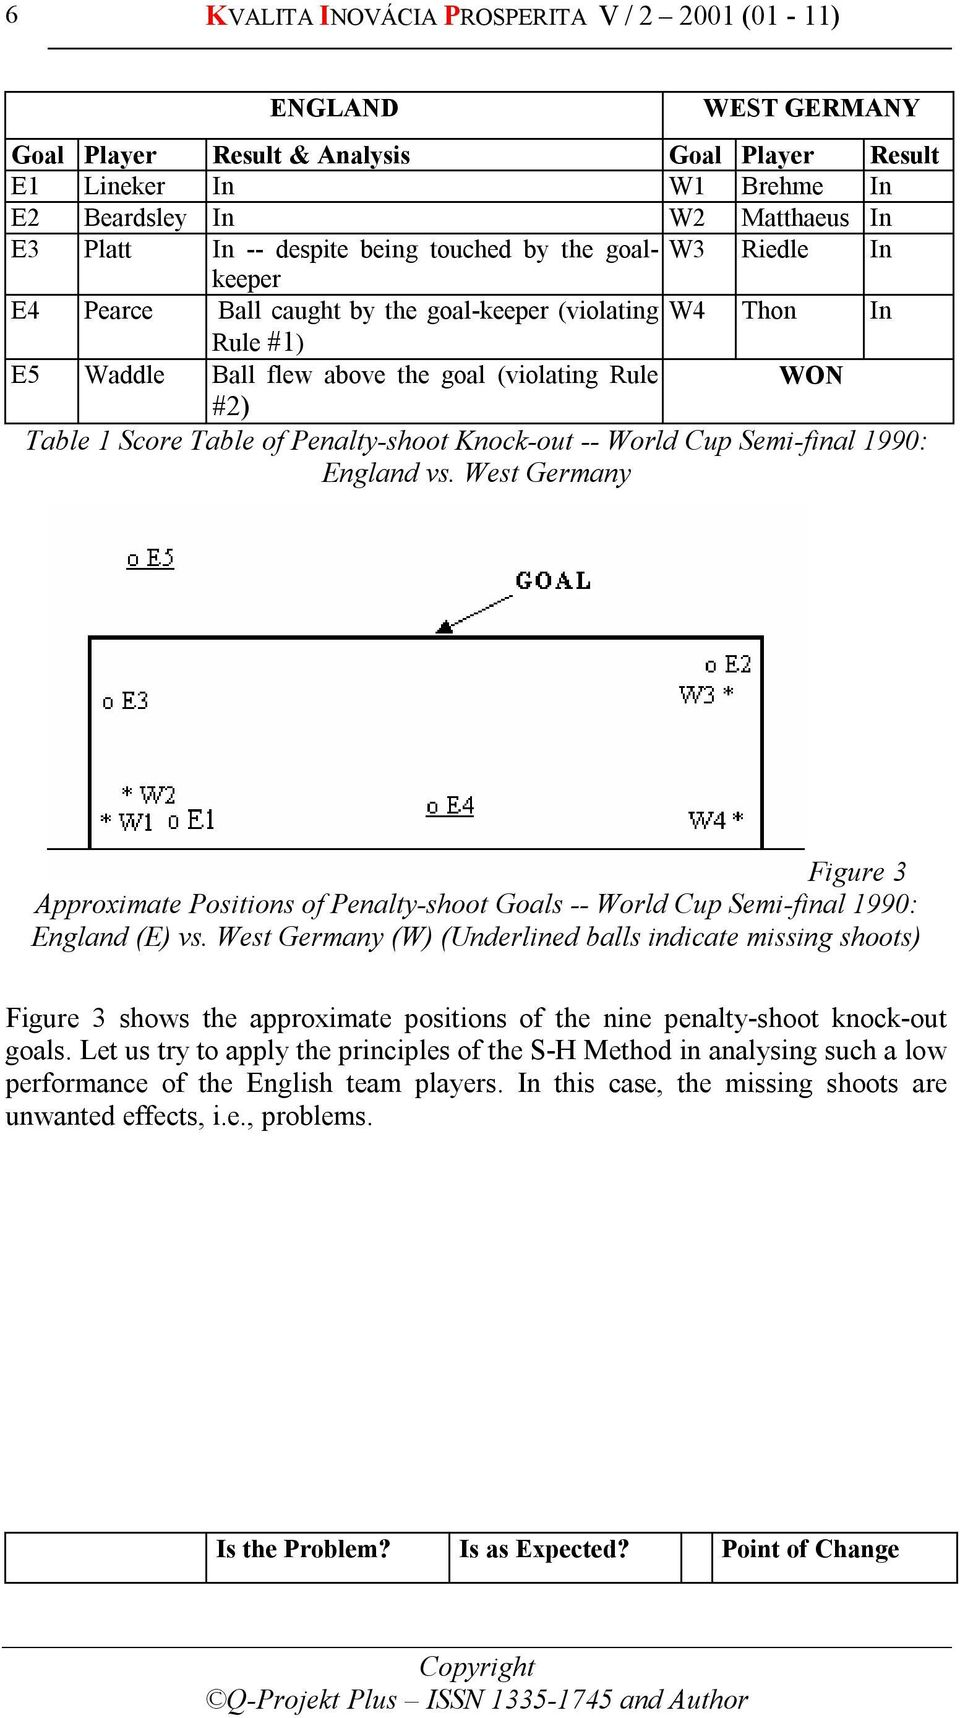 Table of Penalty-shoot Knock-out -- World Cup Semi-final 1990: England vs. West Germany Figure 3 Approximate Positions of Penalty-shoot Goals -- World Cup Semi-final 1990: England (E) vs.